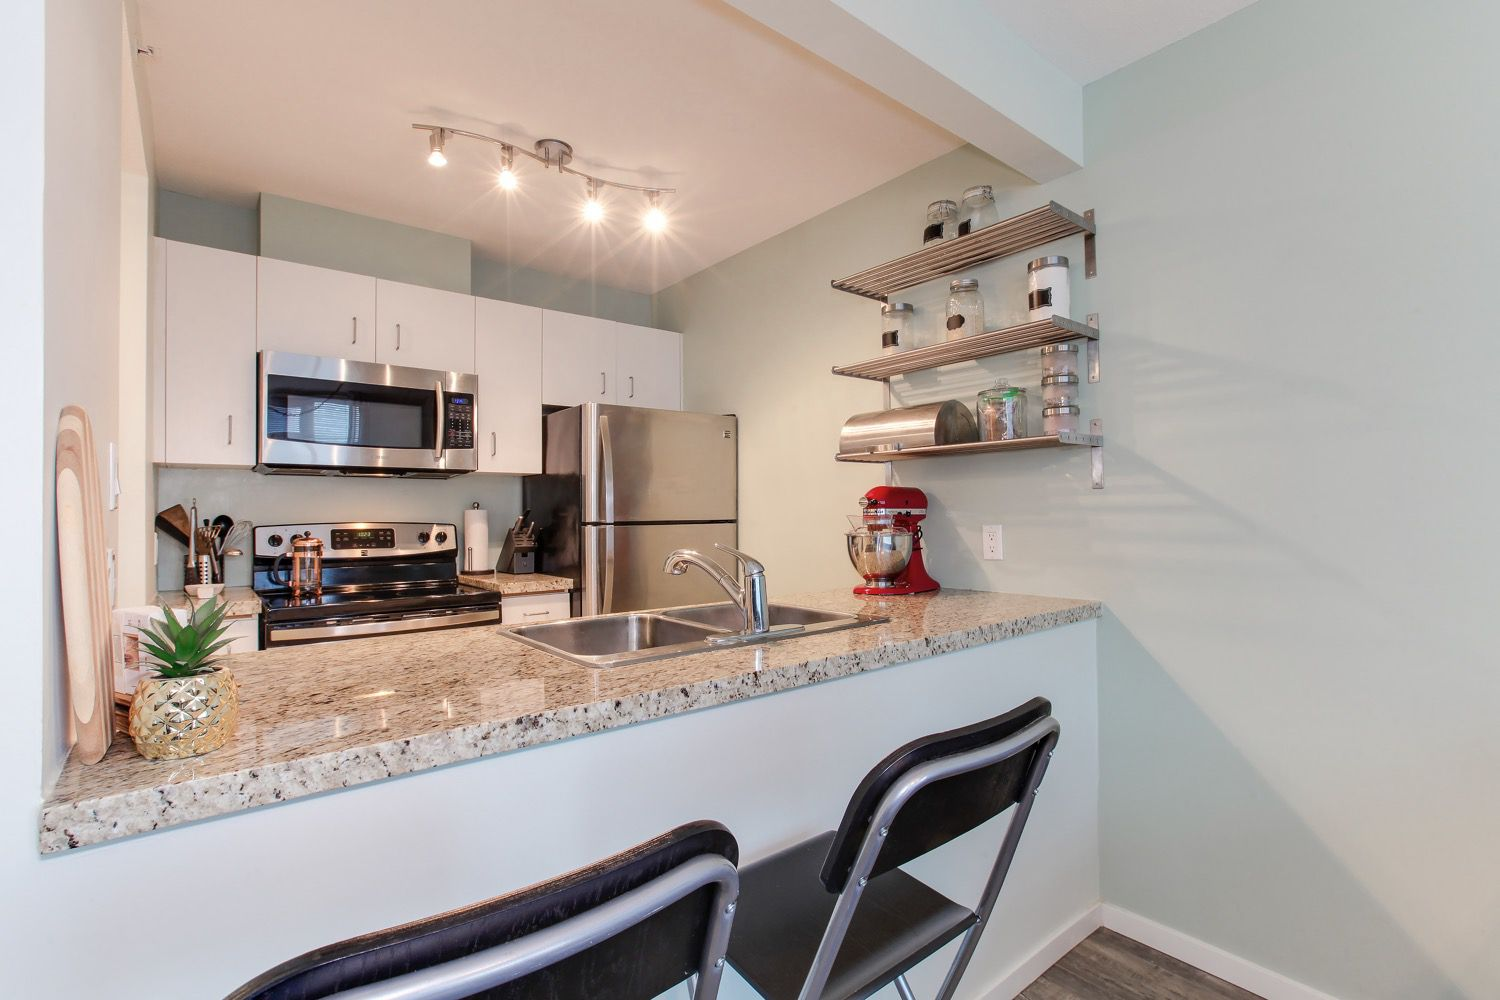 """Main Photo: 1210 438 SEYMOUR Street in Vancouver: Downtown VW Condo for sale in """"CONFERENCE PLAZA"""" (Vancouver West)  : MLS®# R2346175"""